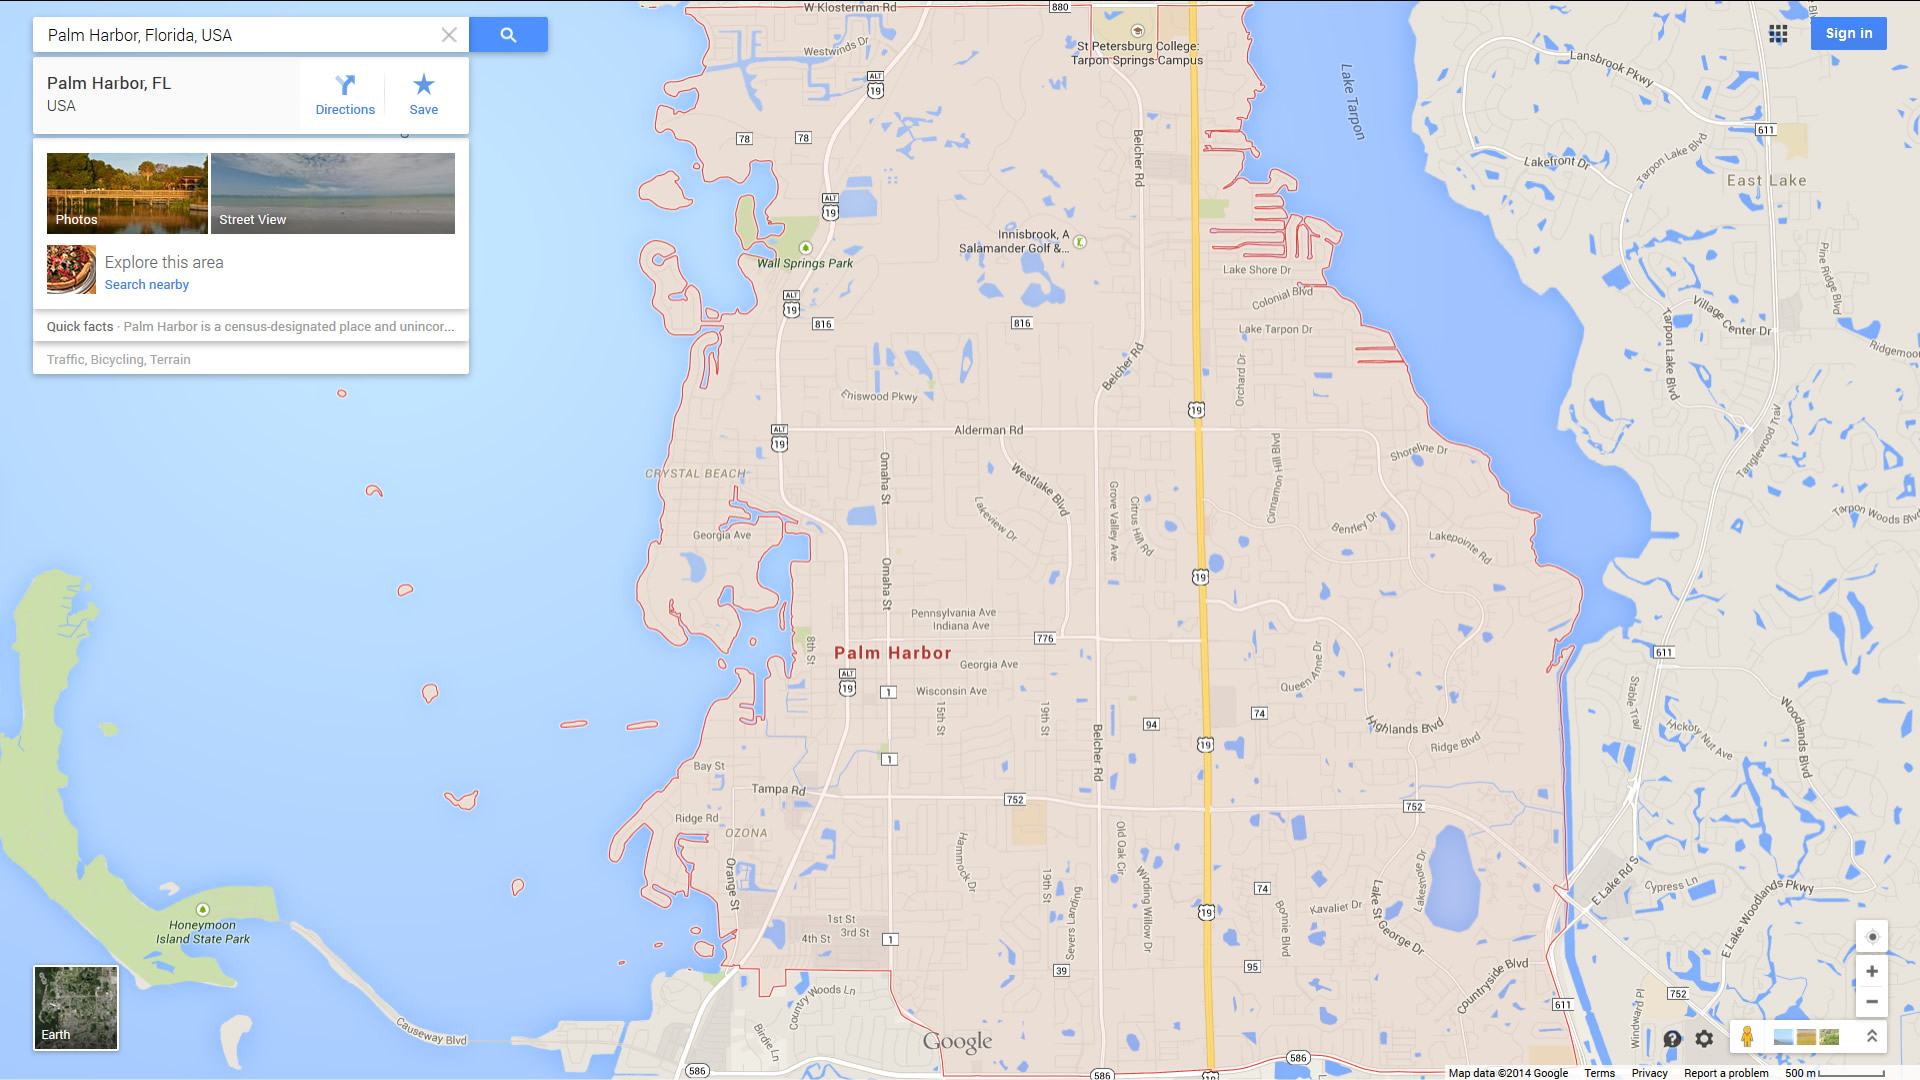 Palm Harbor Florida Map - Where Is Palm Harbor Florida On The Map